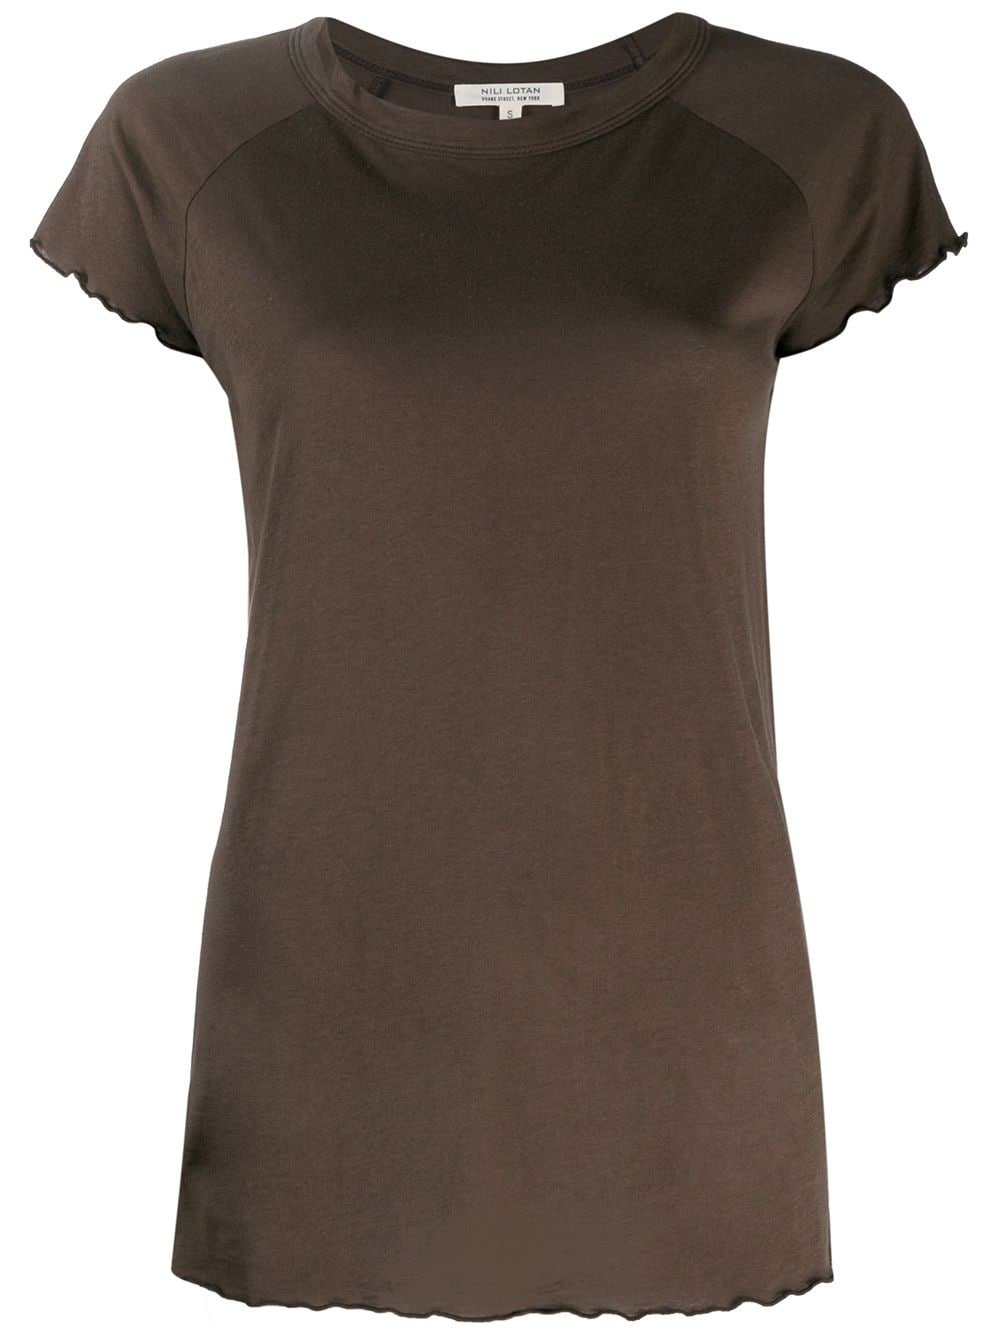 Nili Lotan Short-Sleeve Fitted Top